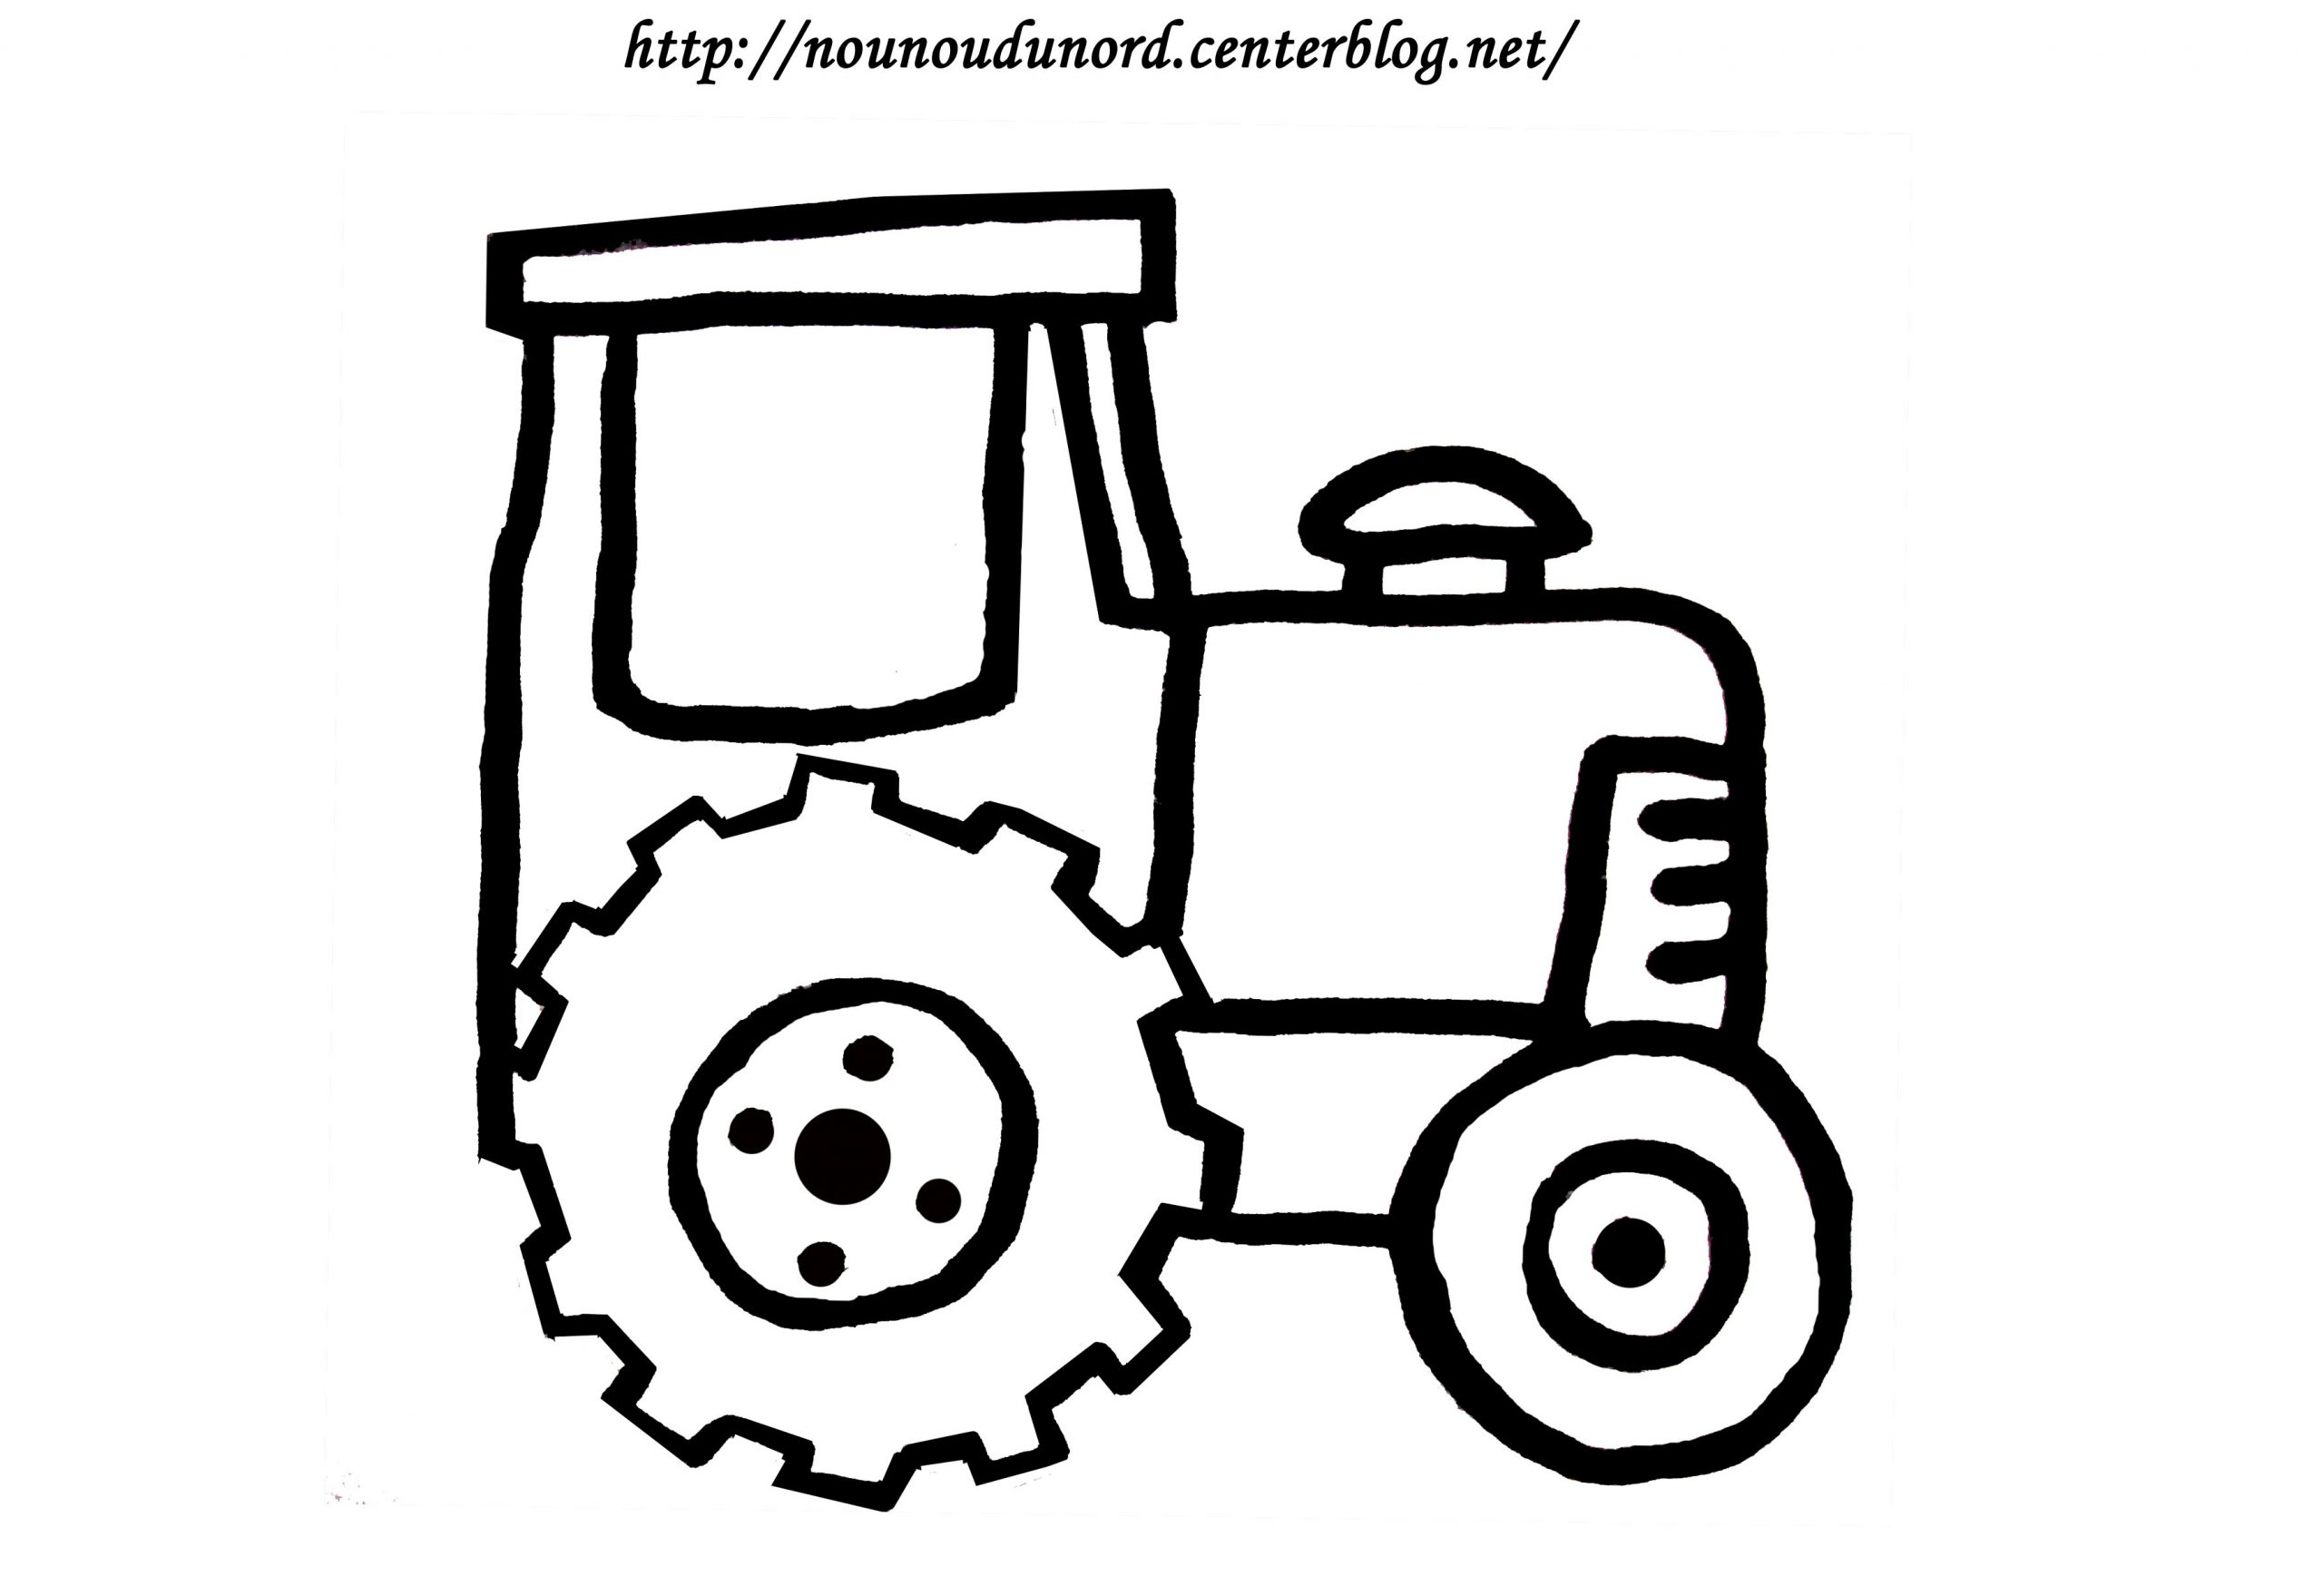 Tracteur #43 (Transport) – Coloriages À Imprimer destiné Tracteur À Colorier